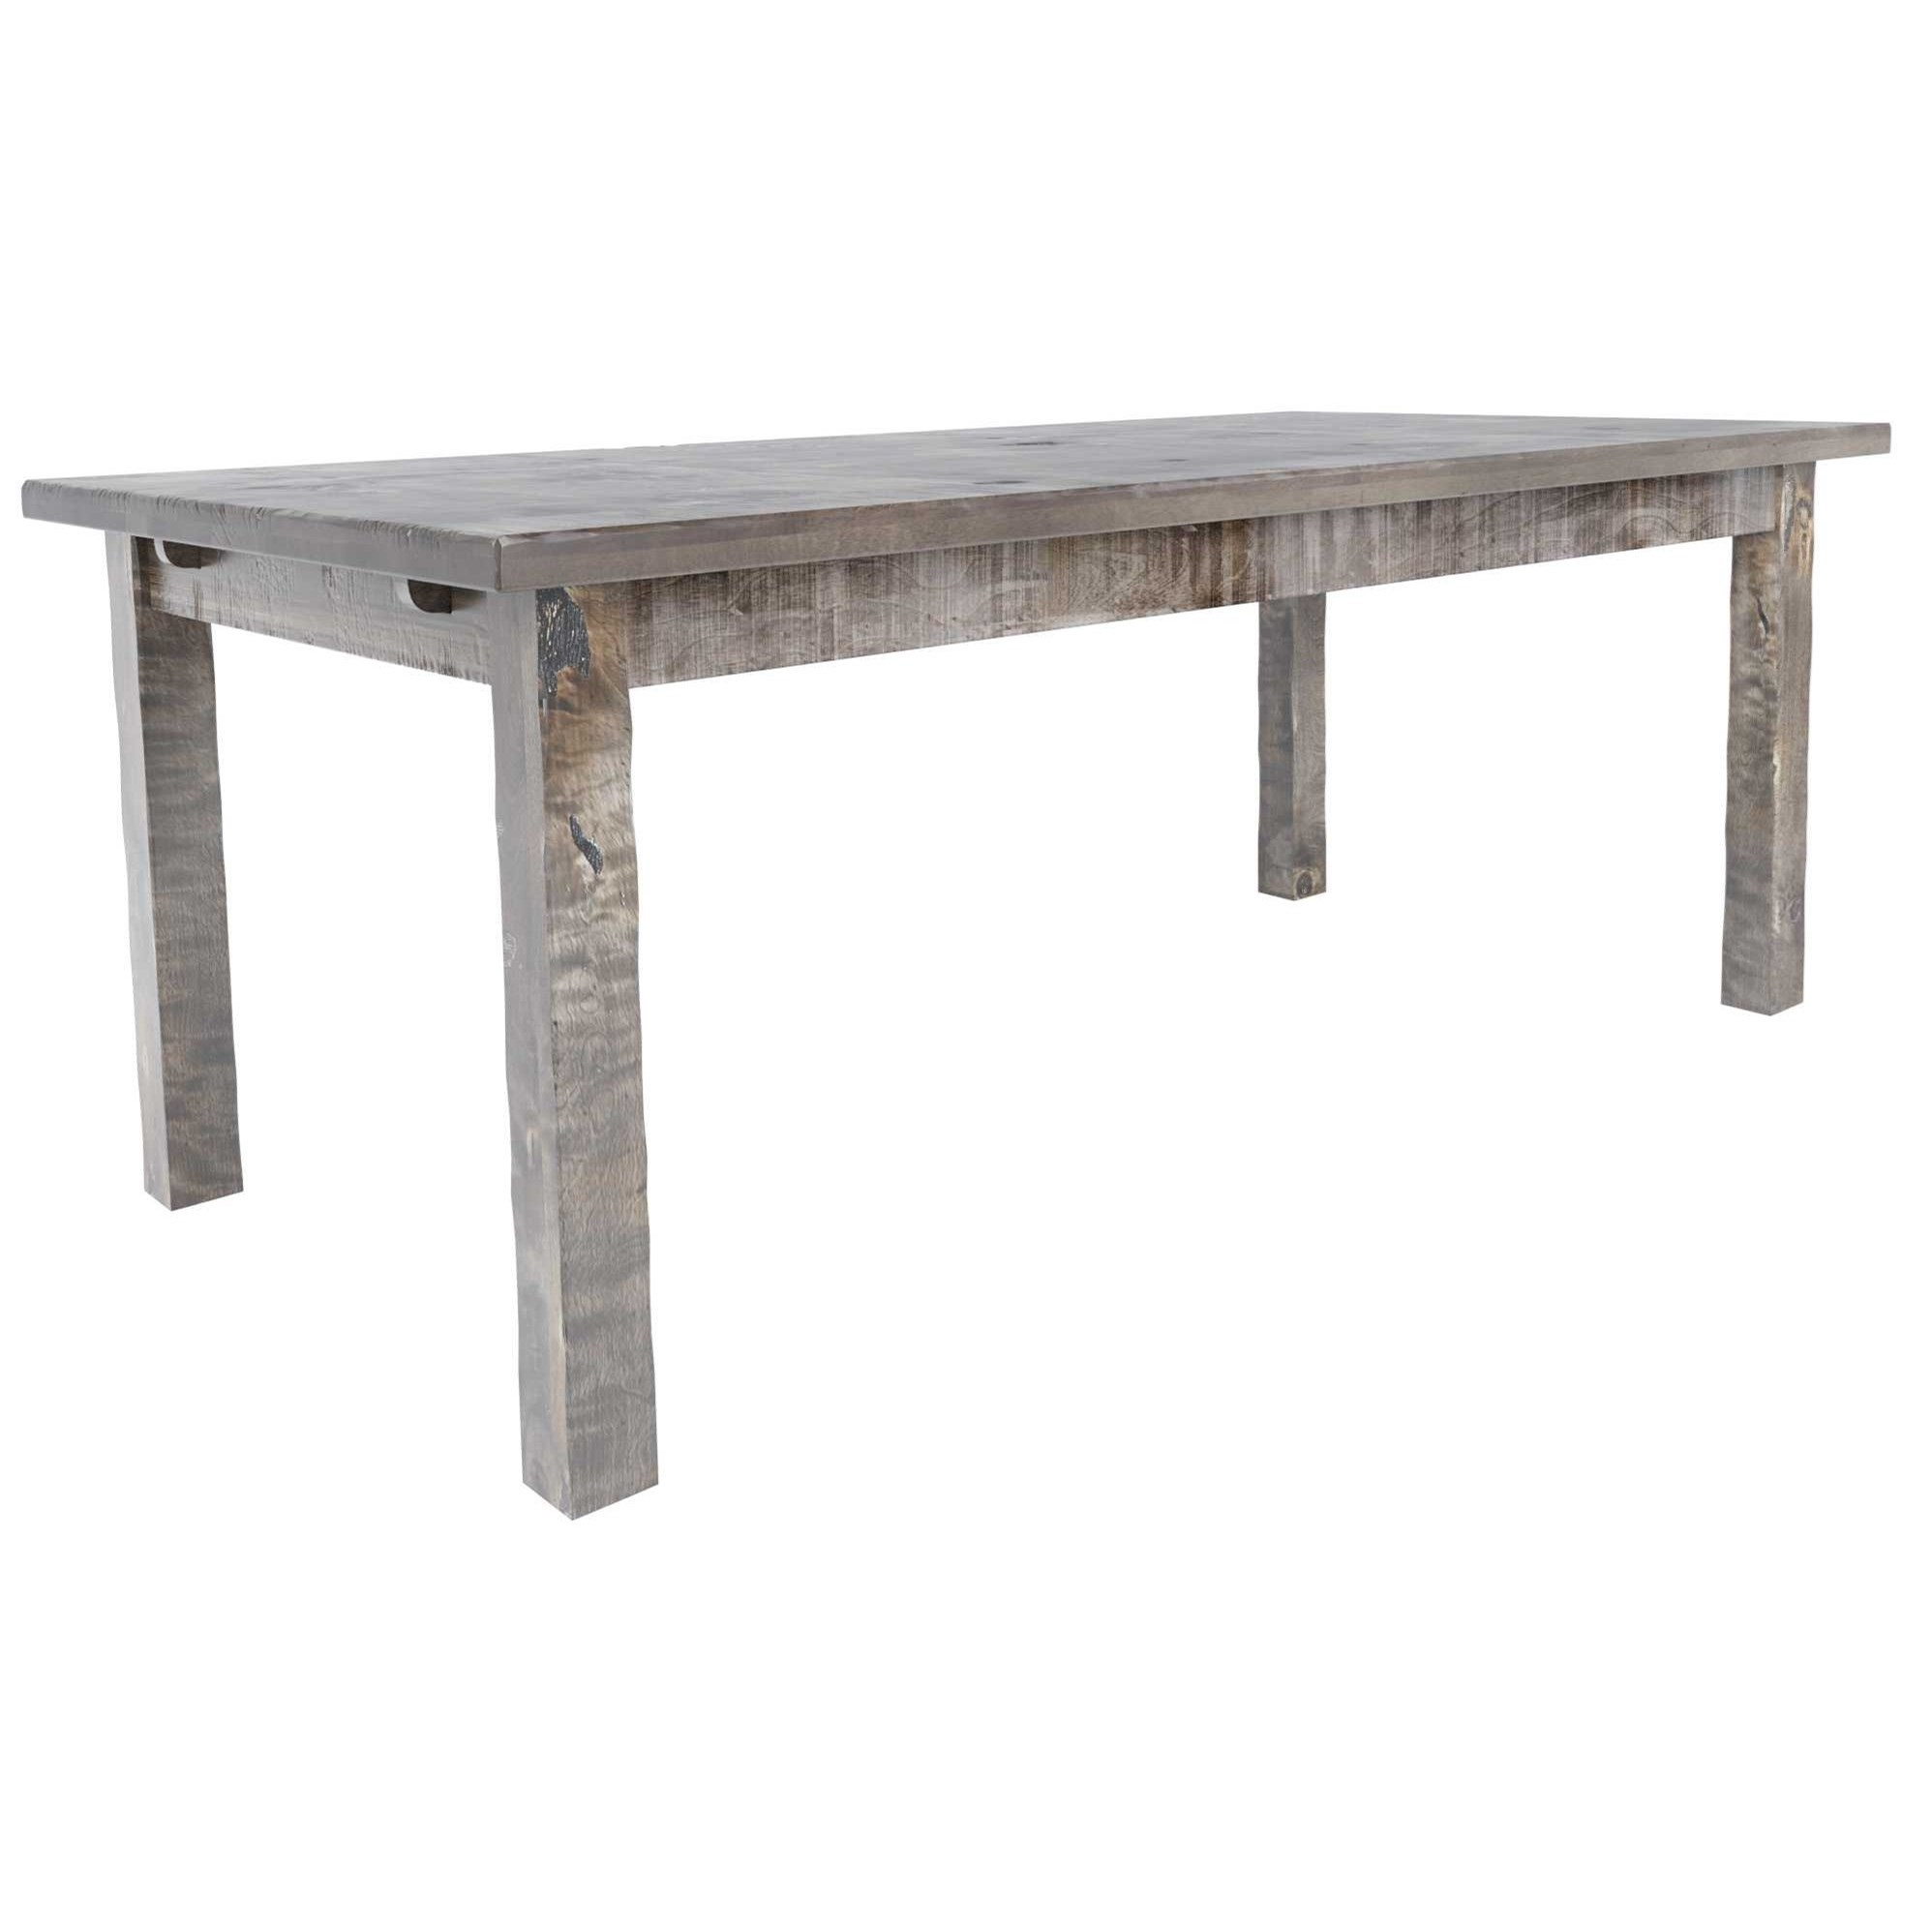 Champlain - Custom Dining Customizable Rectangular Wood Top Table by Canadel at Saugerties Furniture Mart